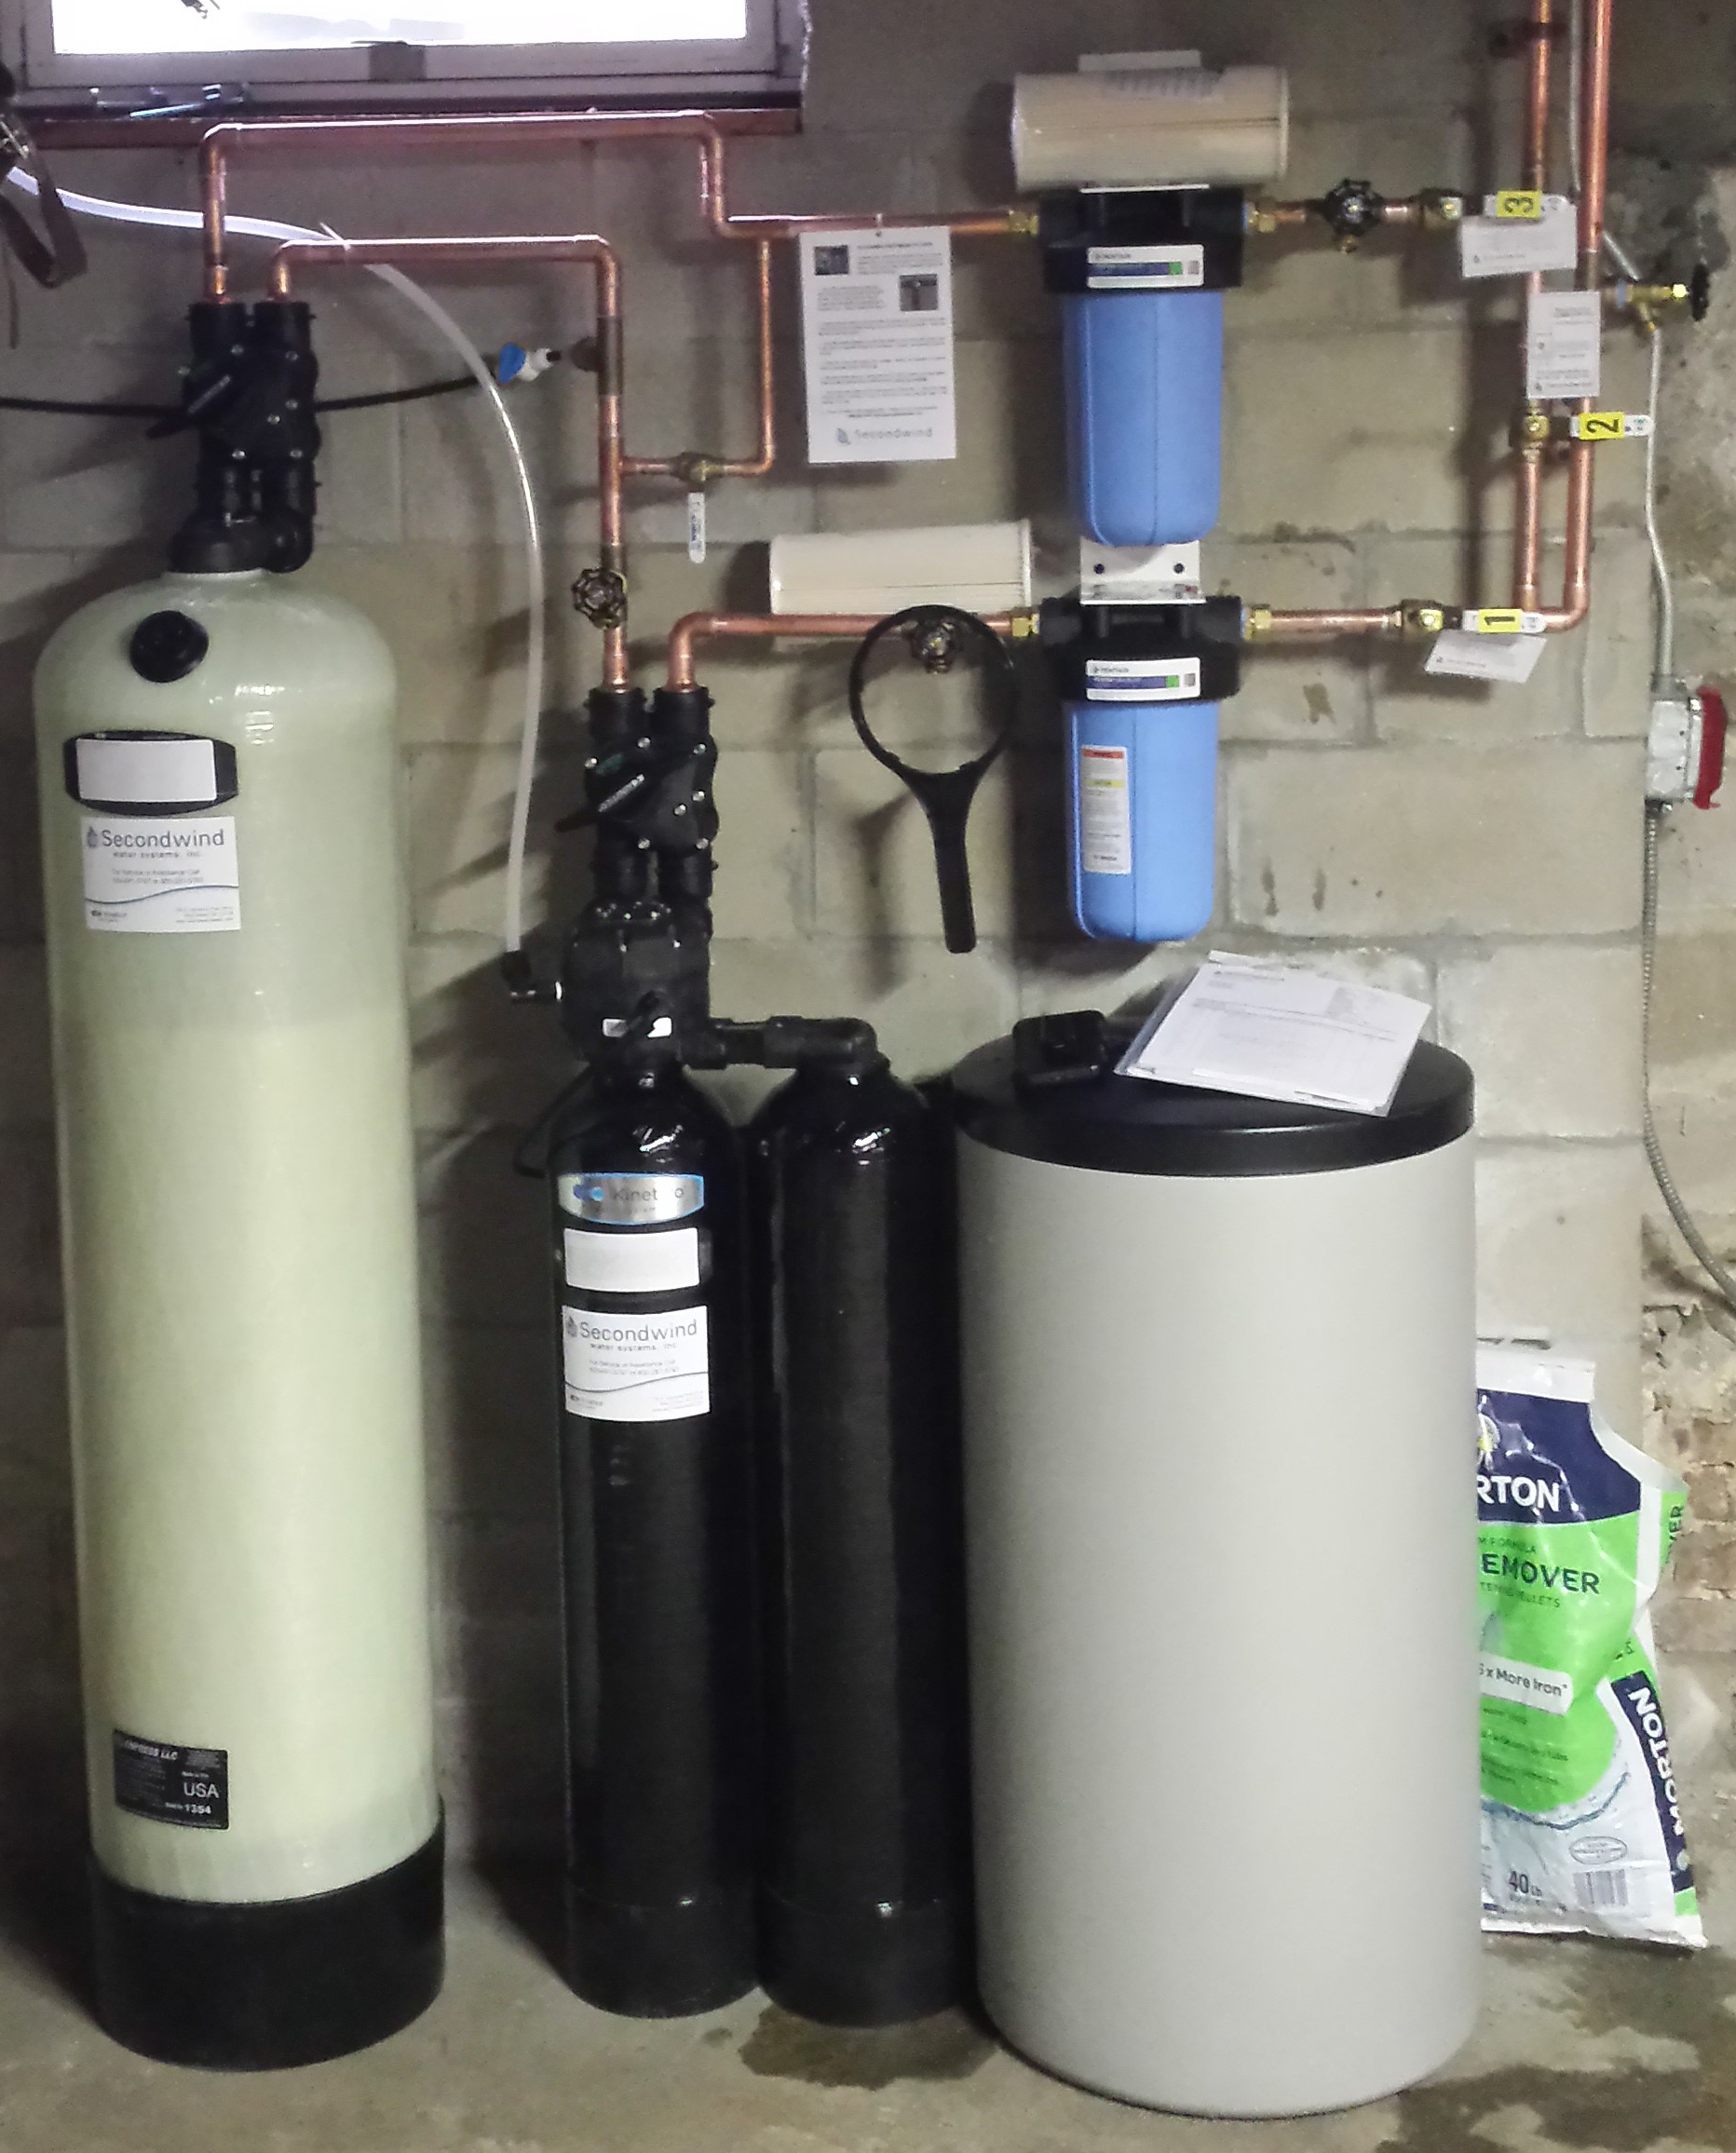 Secondwind Water Systems, Inc. image 3